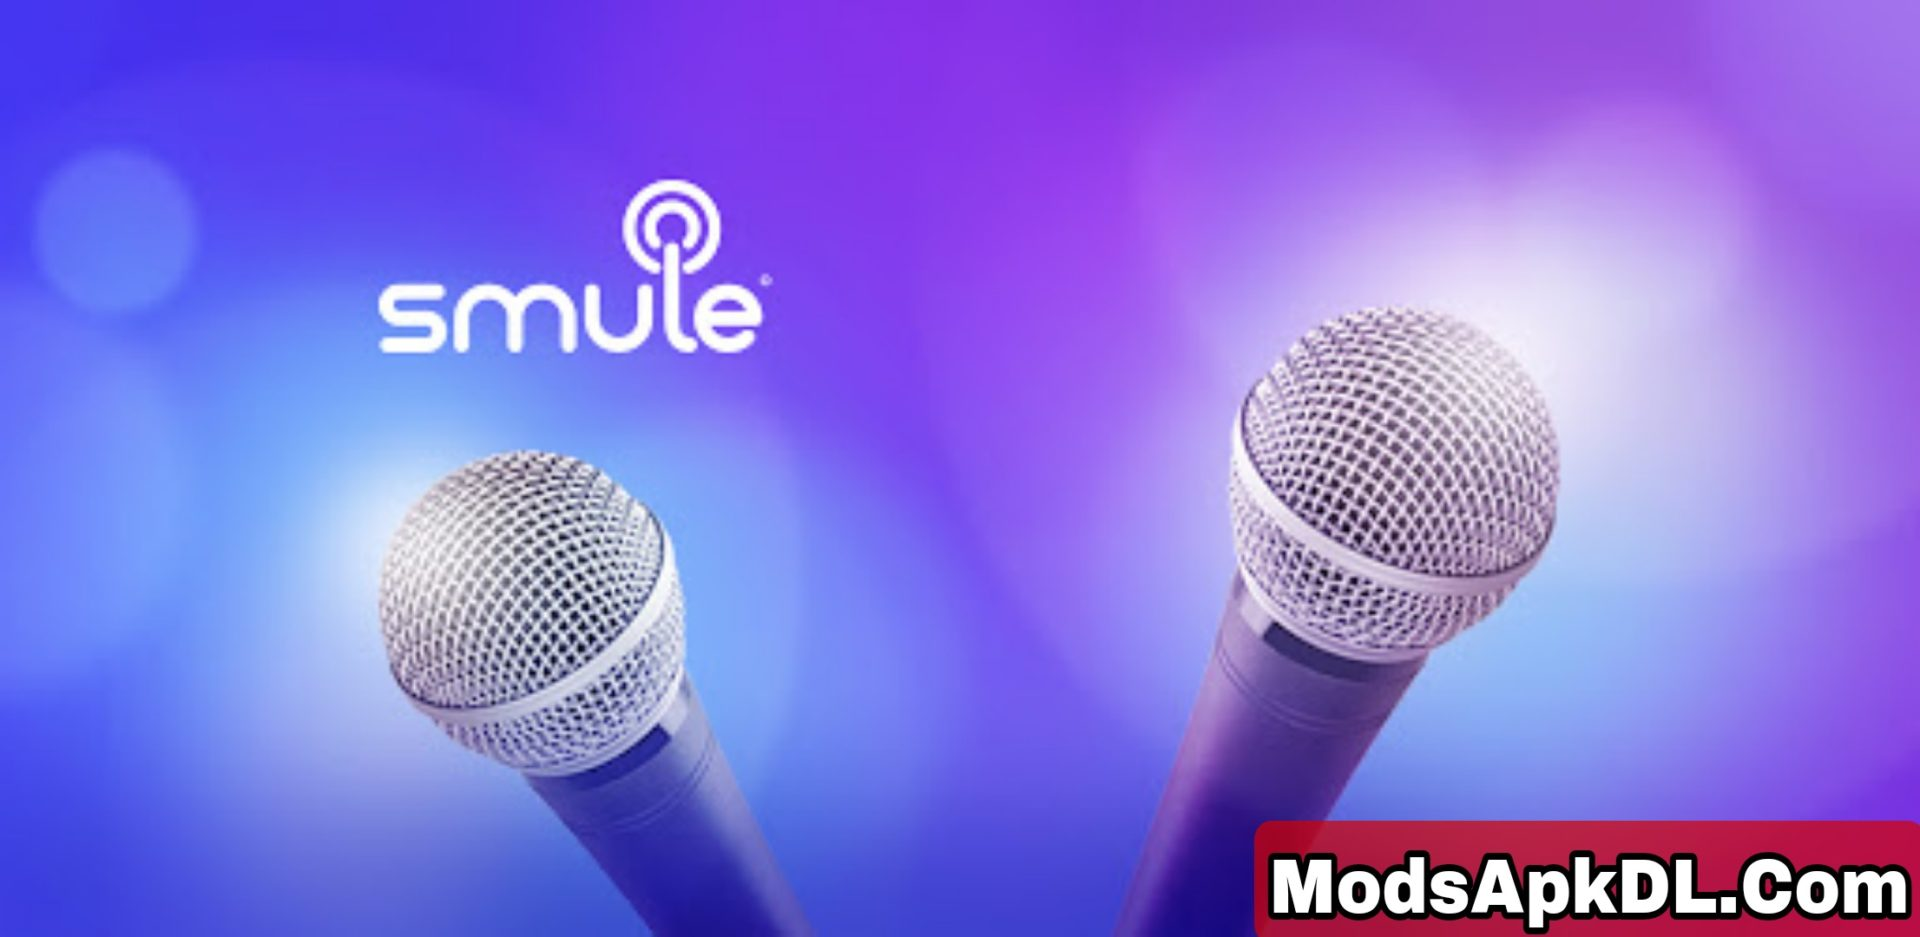 Smule MOD APK v8.5.1 Download (Premium Unlocked) For Android